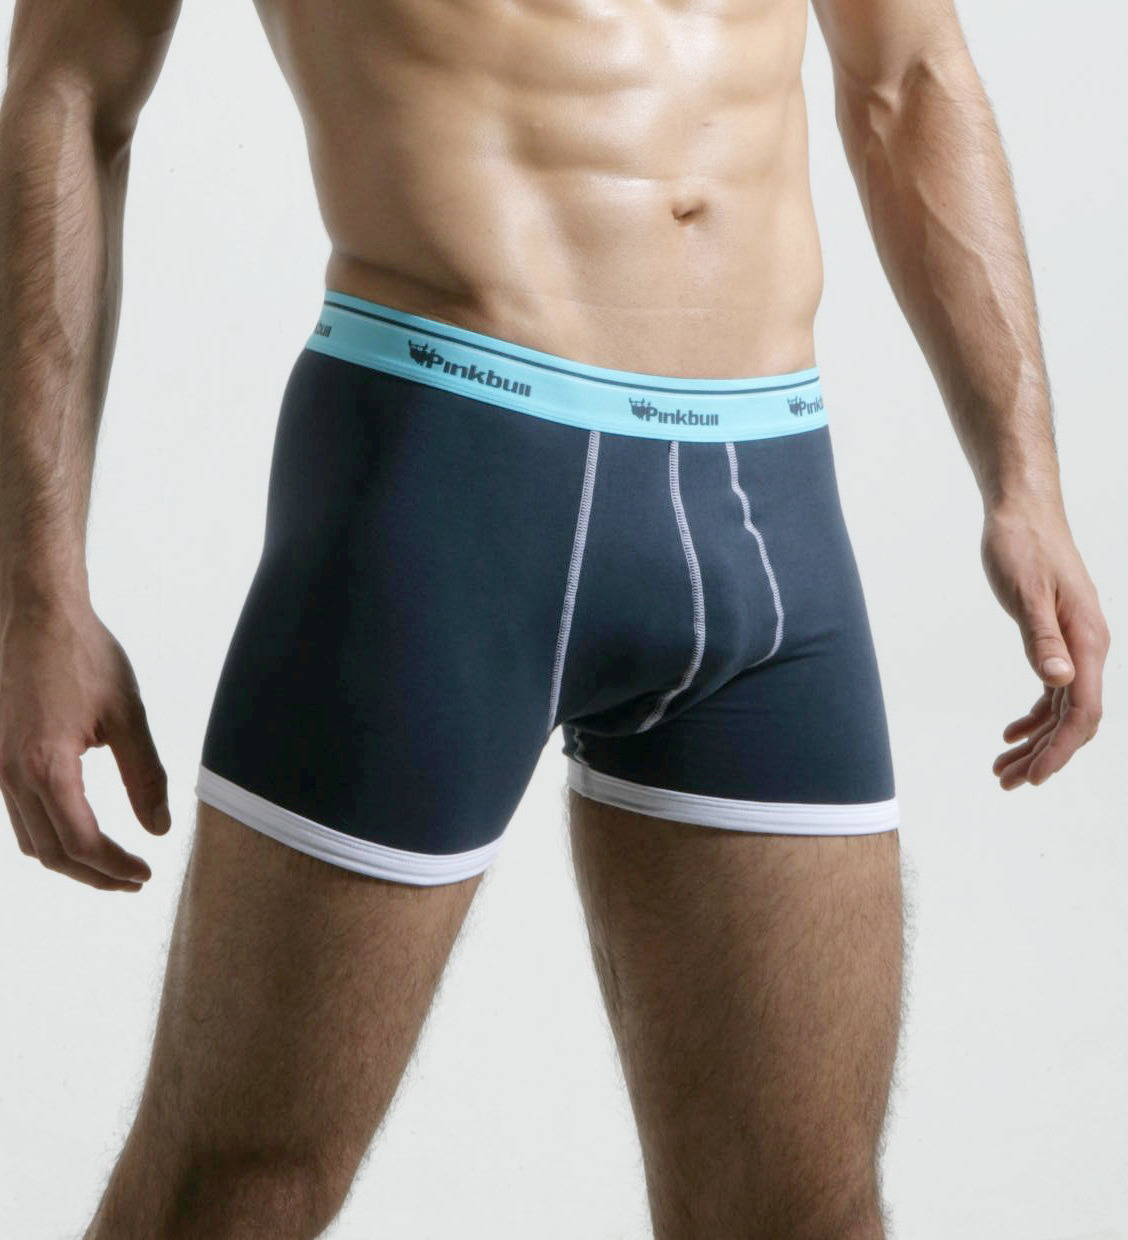 Men's trunks are available as both underwear and swimwear for men. The style is a hybrid of brief and boxer brief and covers up to the point where your manhood ends providing the exceptional support and sexiness to the manhood.